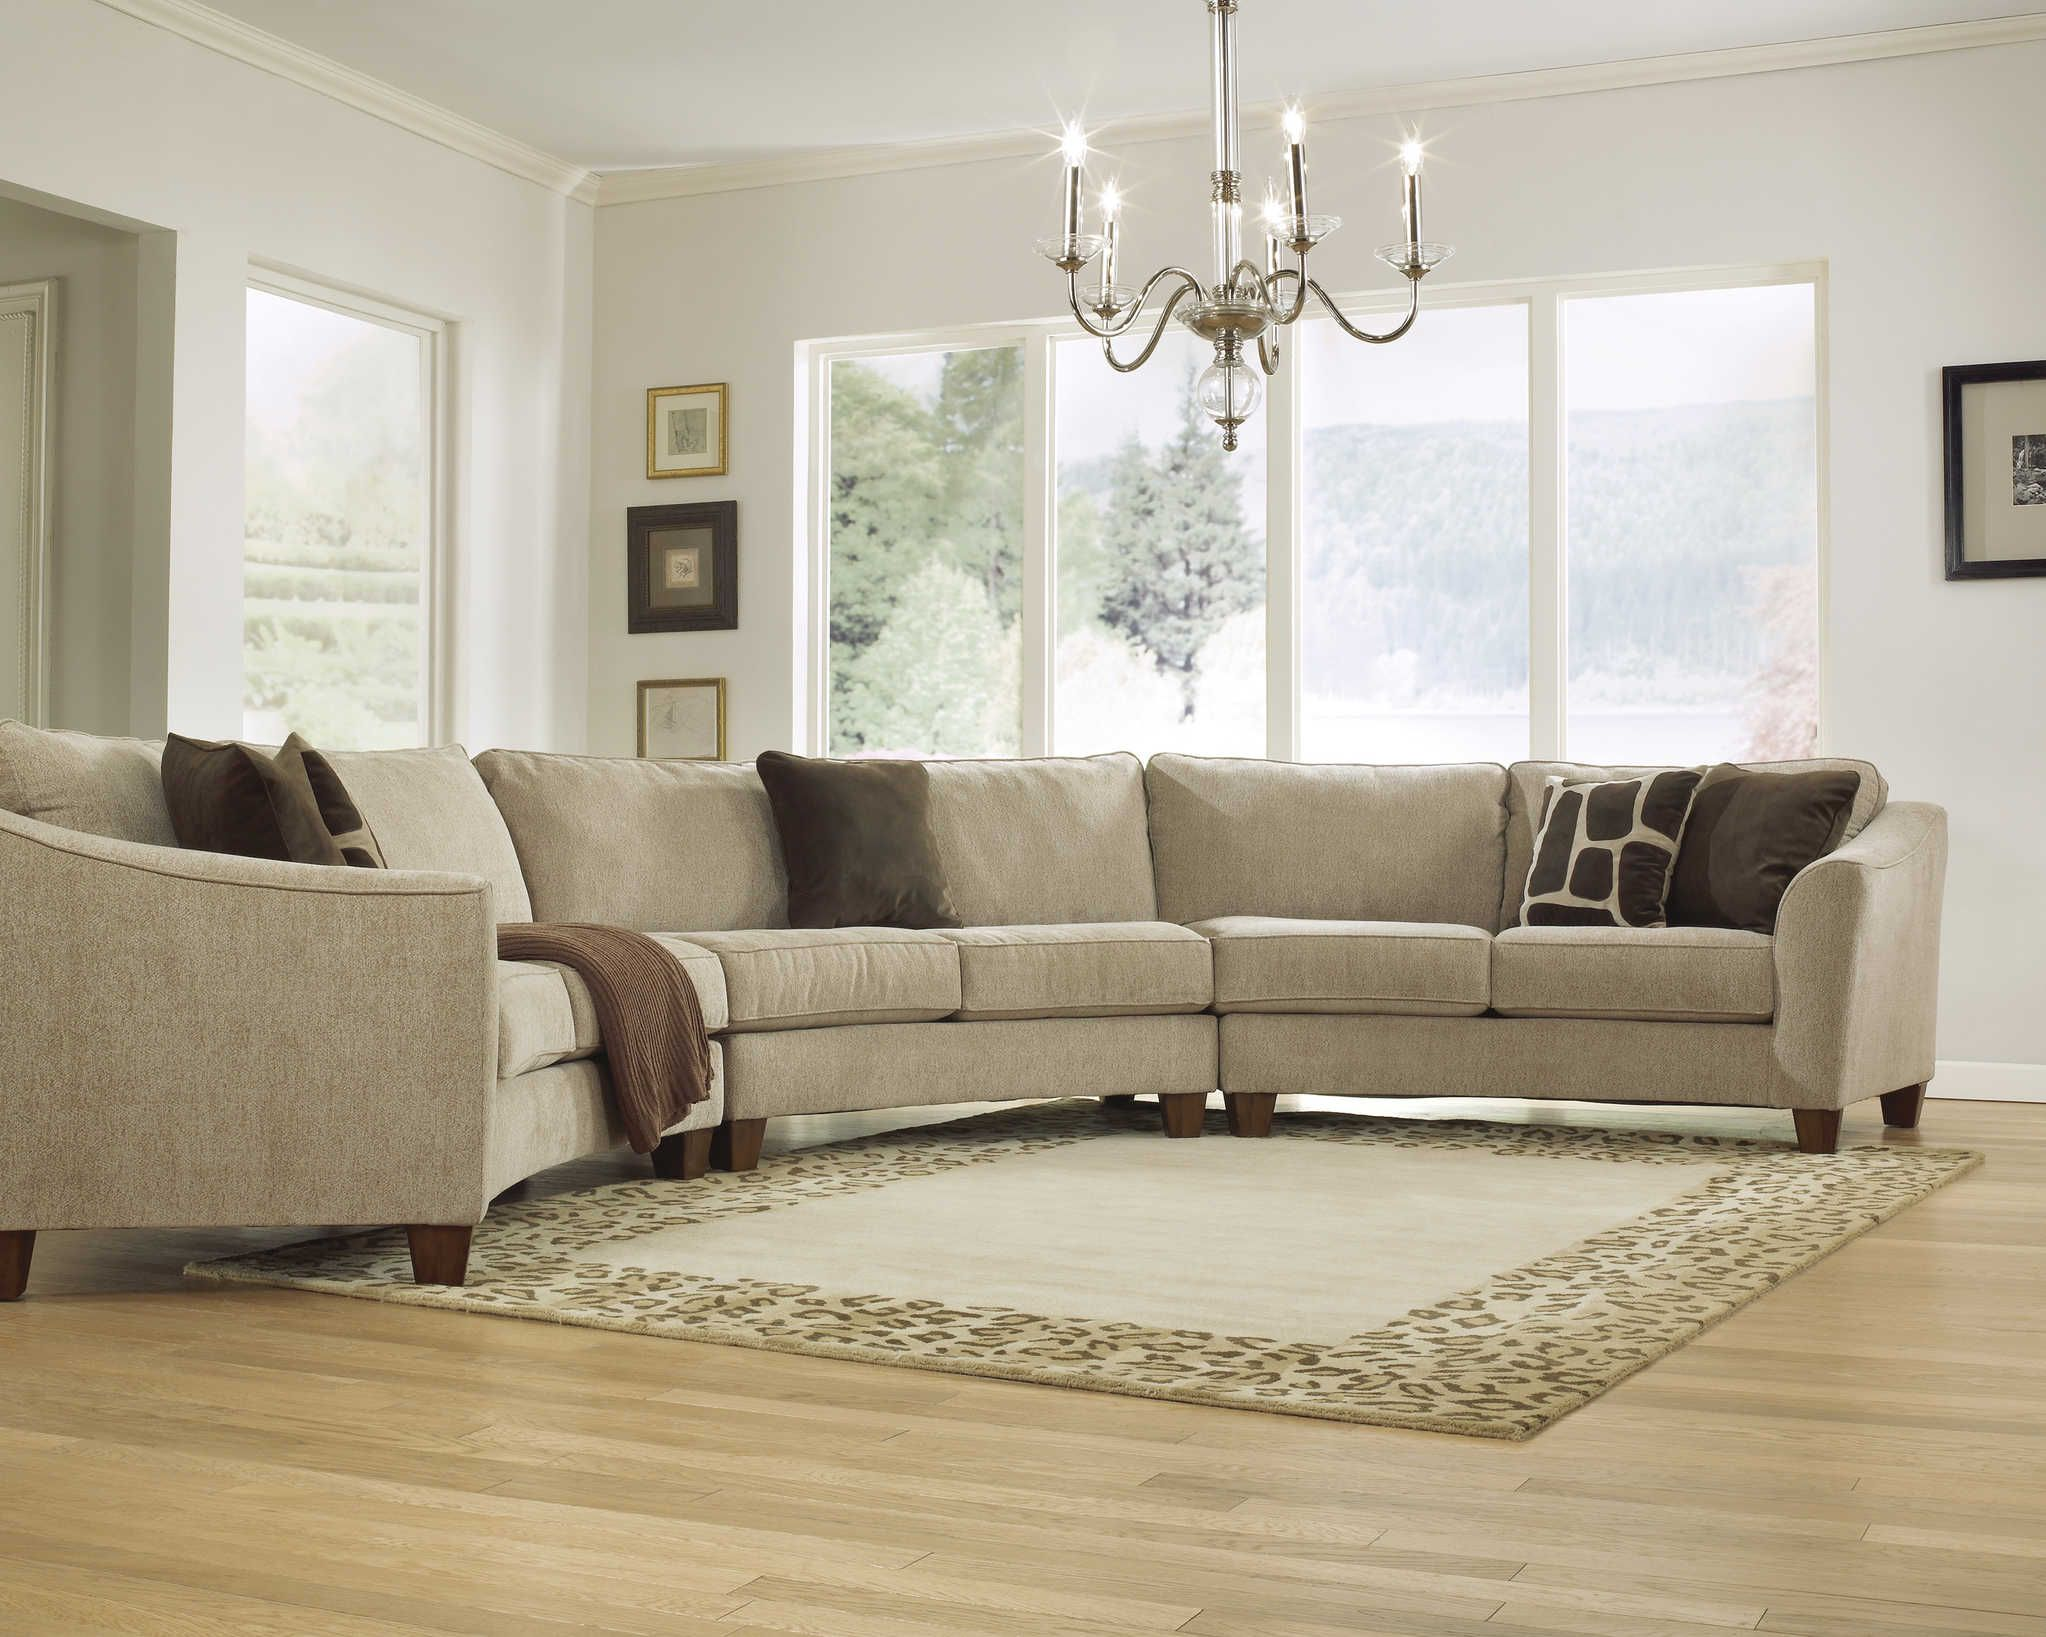 Living Room Designs With Sectionals Amazing 2959Curvaceous Beauty  Curved Sectional Sofa Set In Classic Design Inspiration